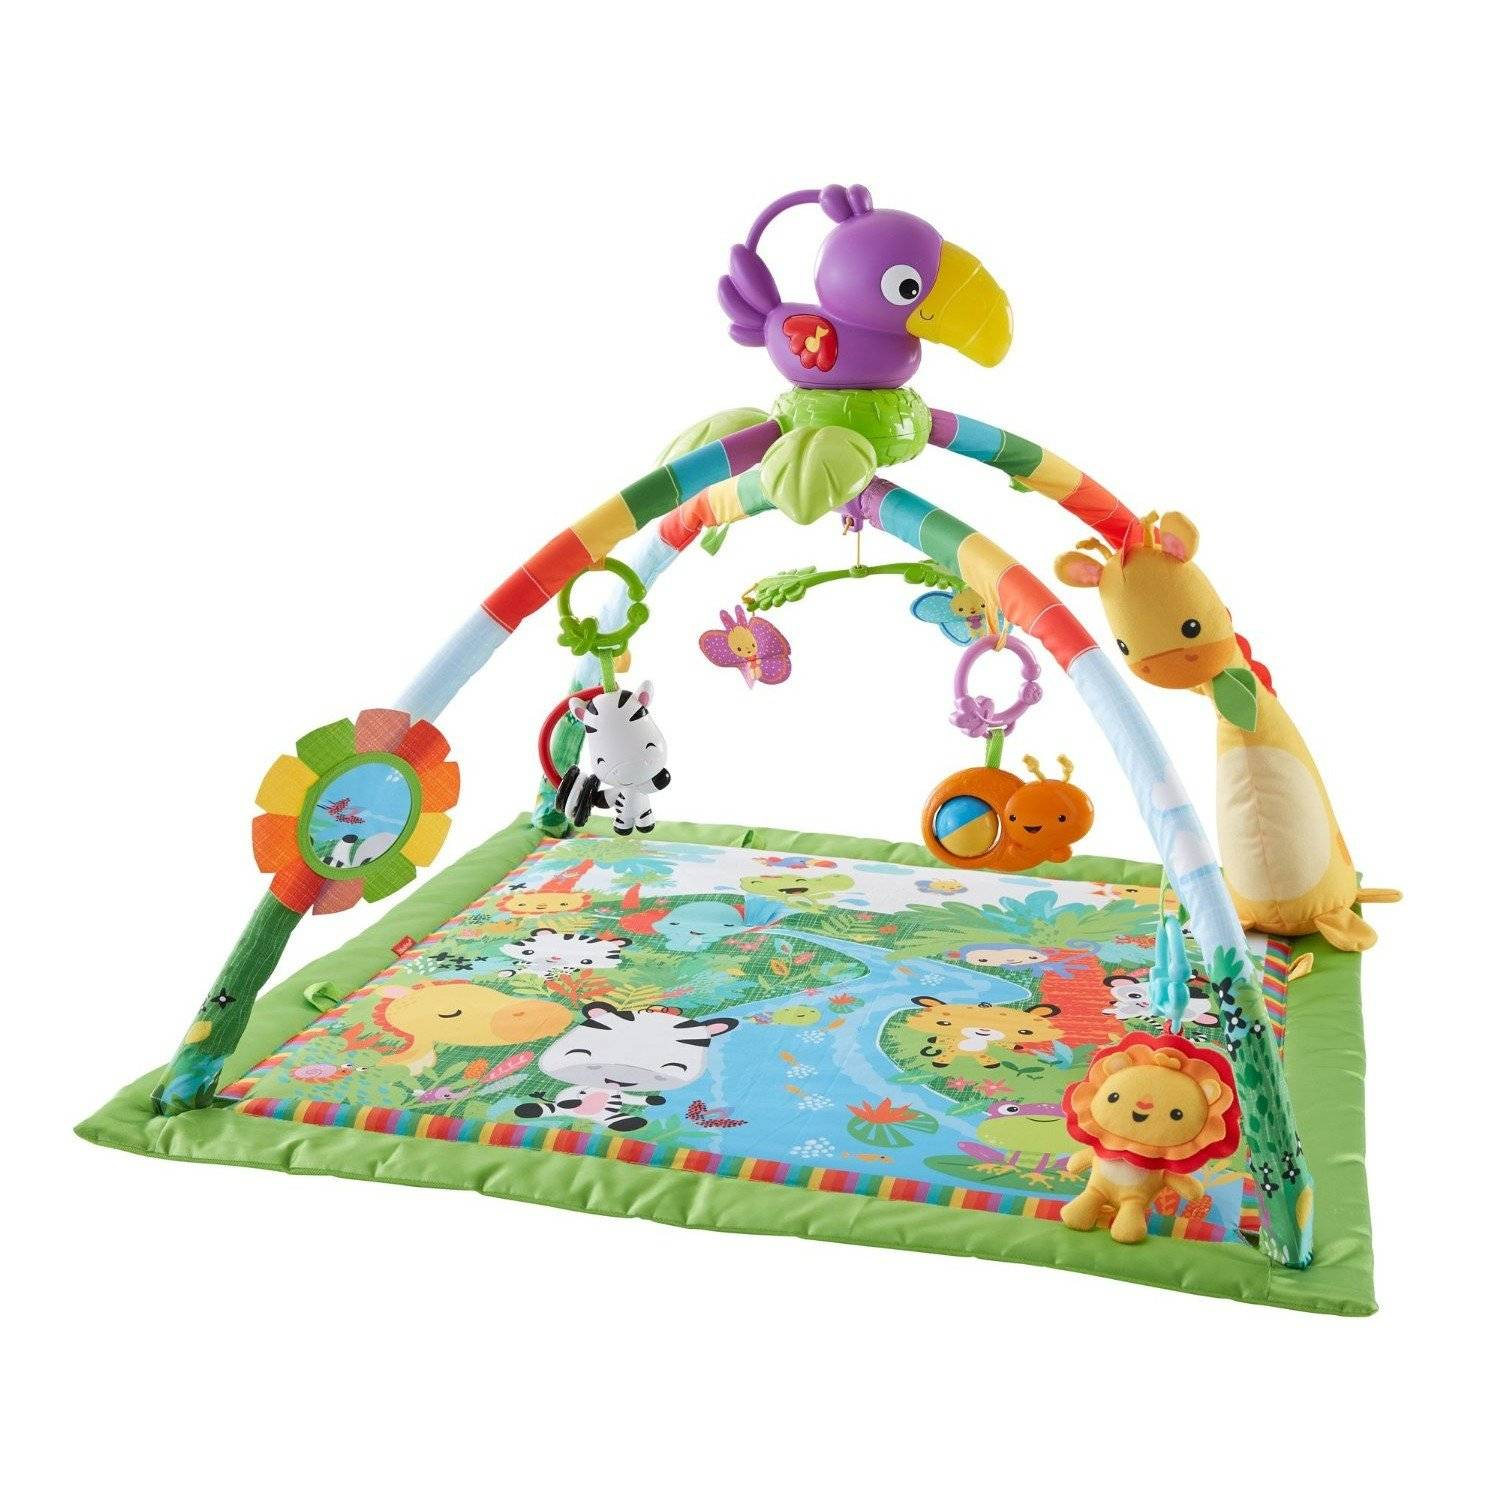 Fisher-Price Musical and Lights Deluxe Gym (DFP08)